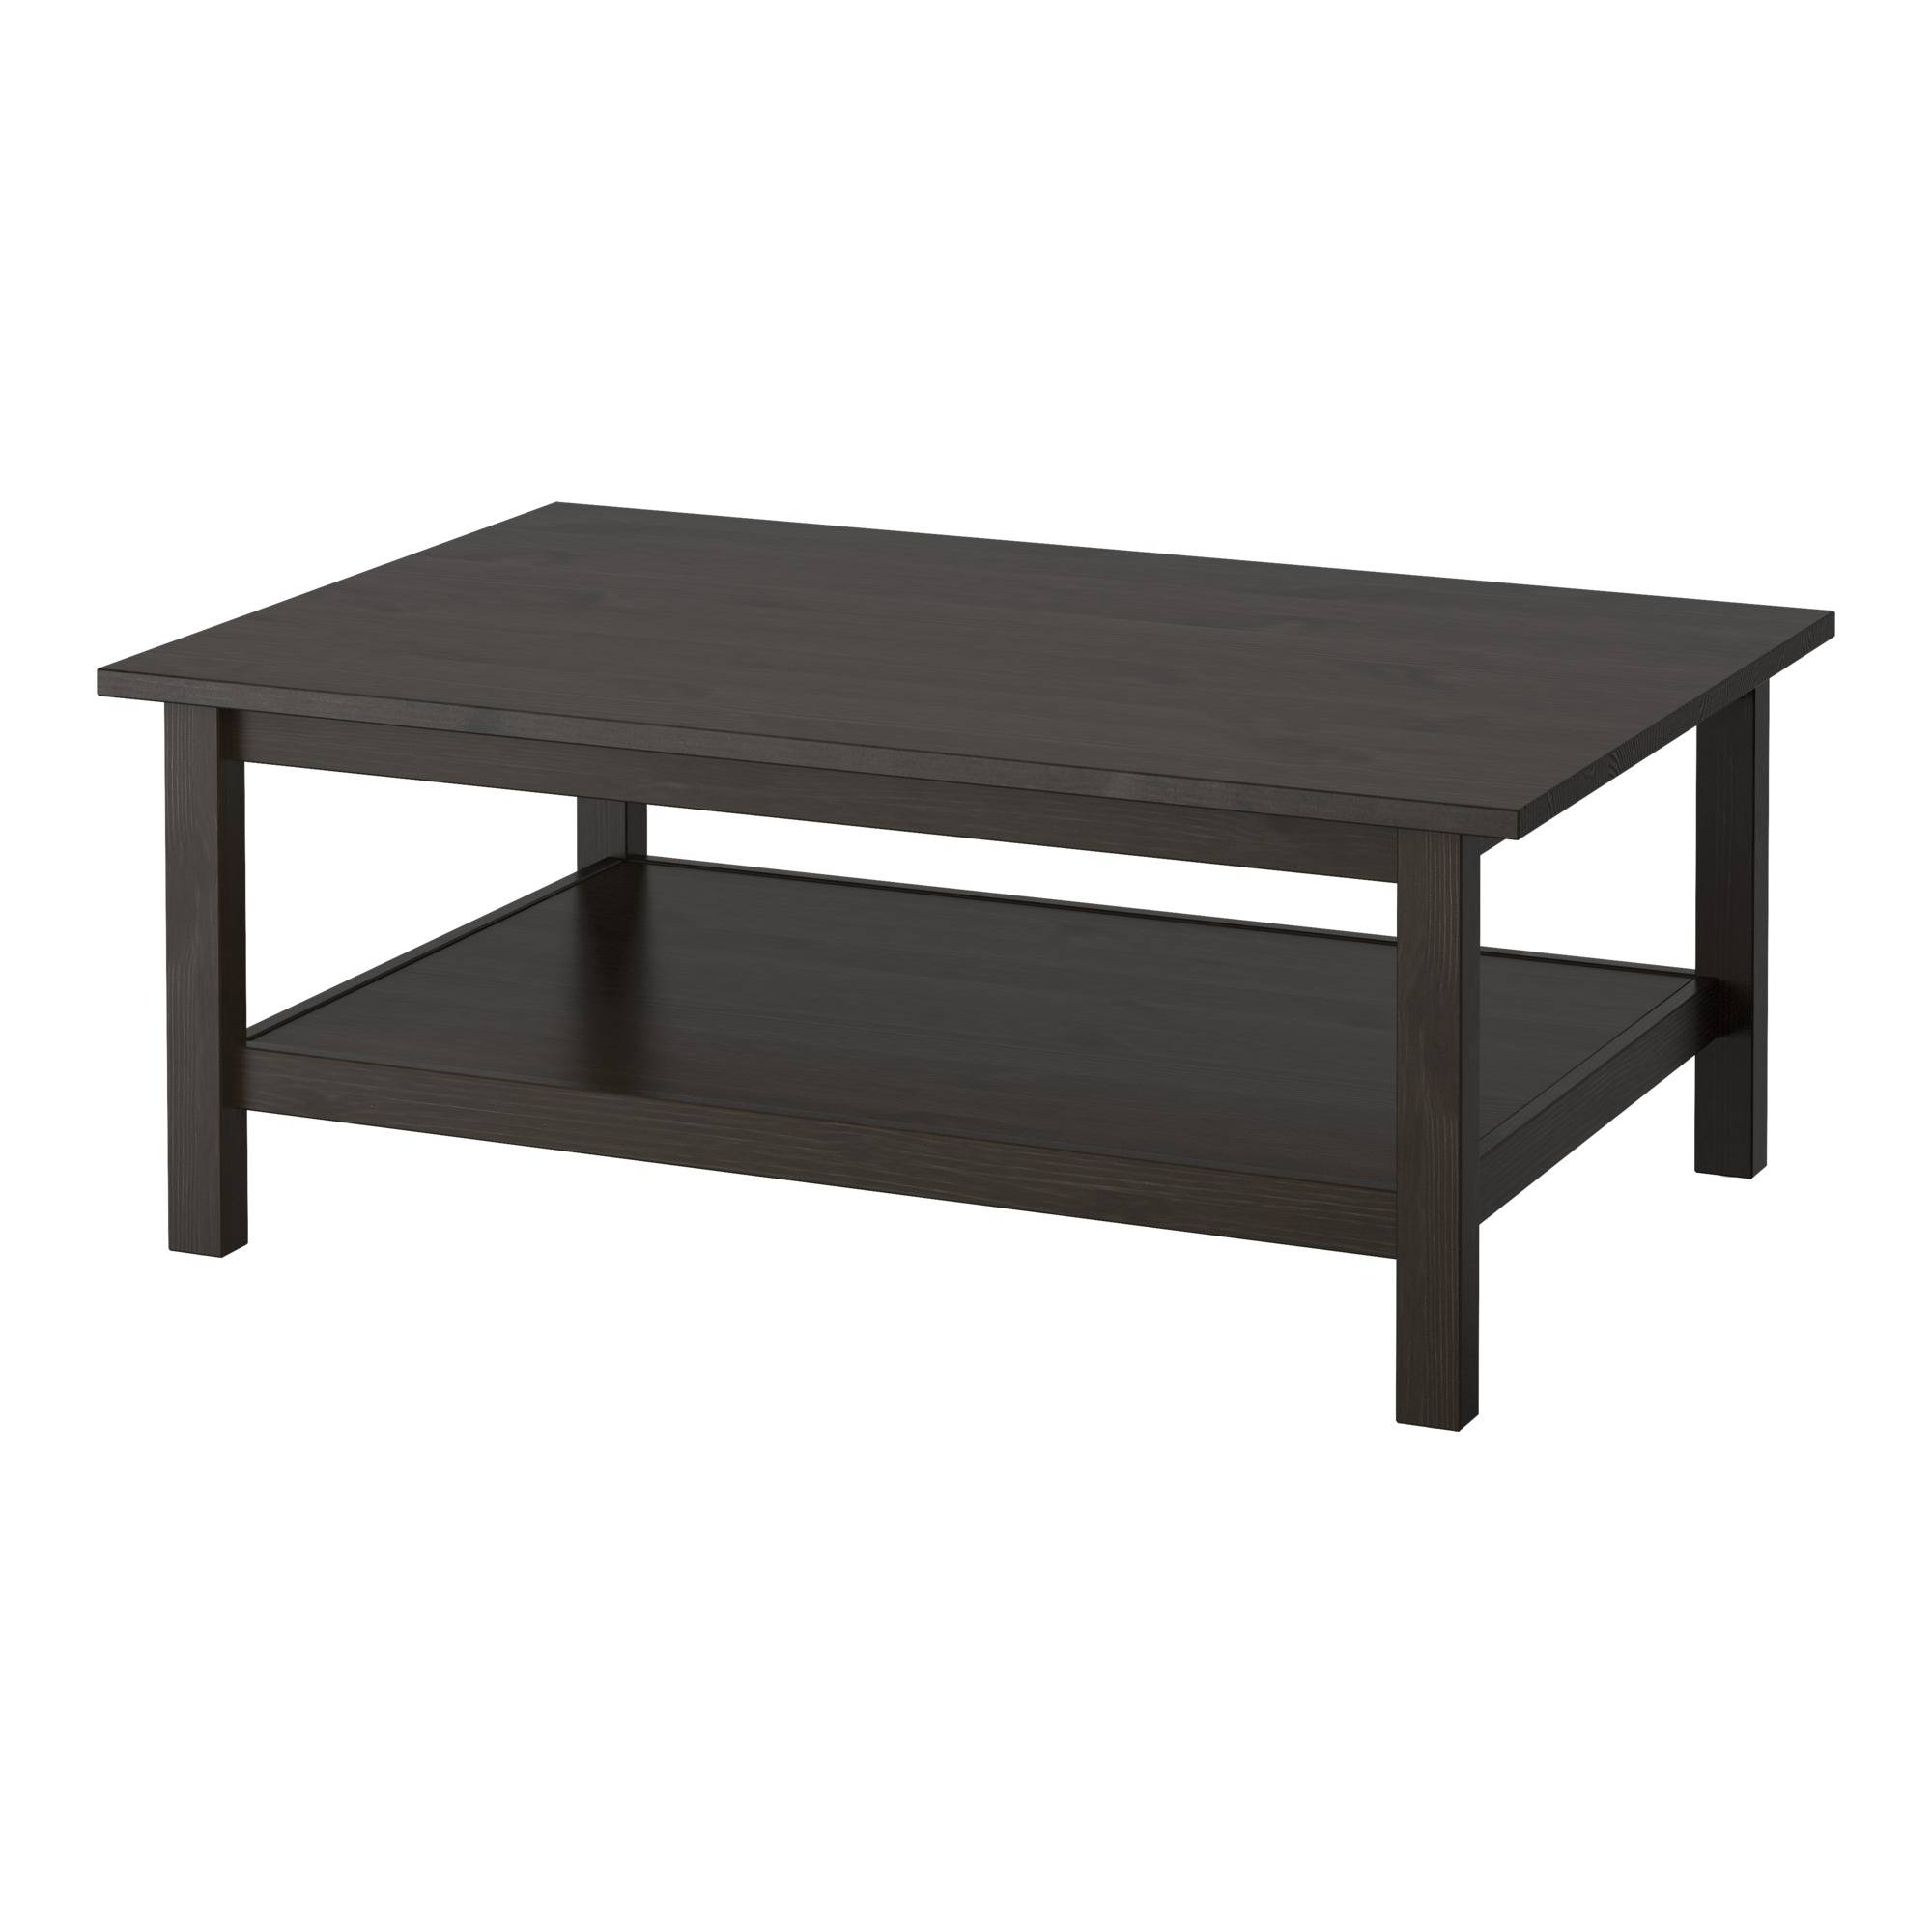 Coffee Tables & Glass Coffee Tables | Ikea intended for White Cube Coffee Tables (Image 12 of 30)